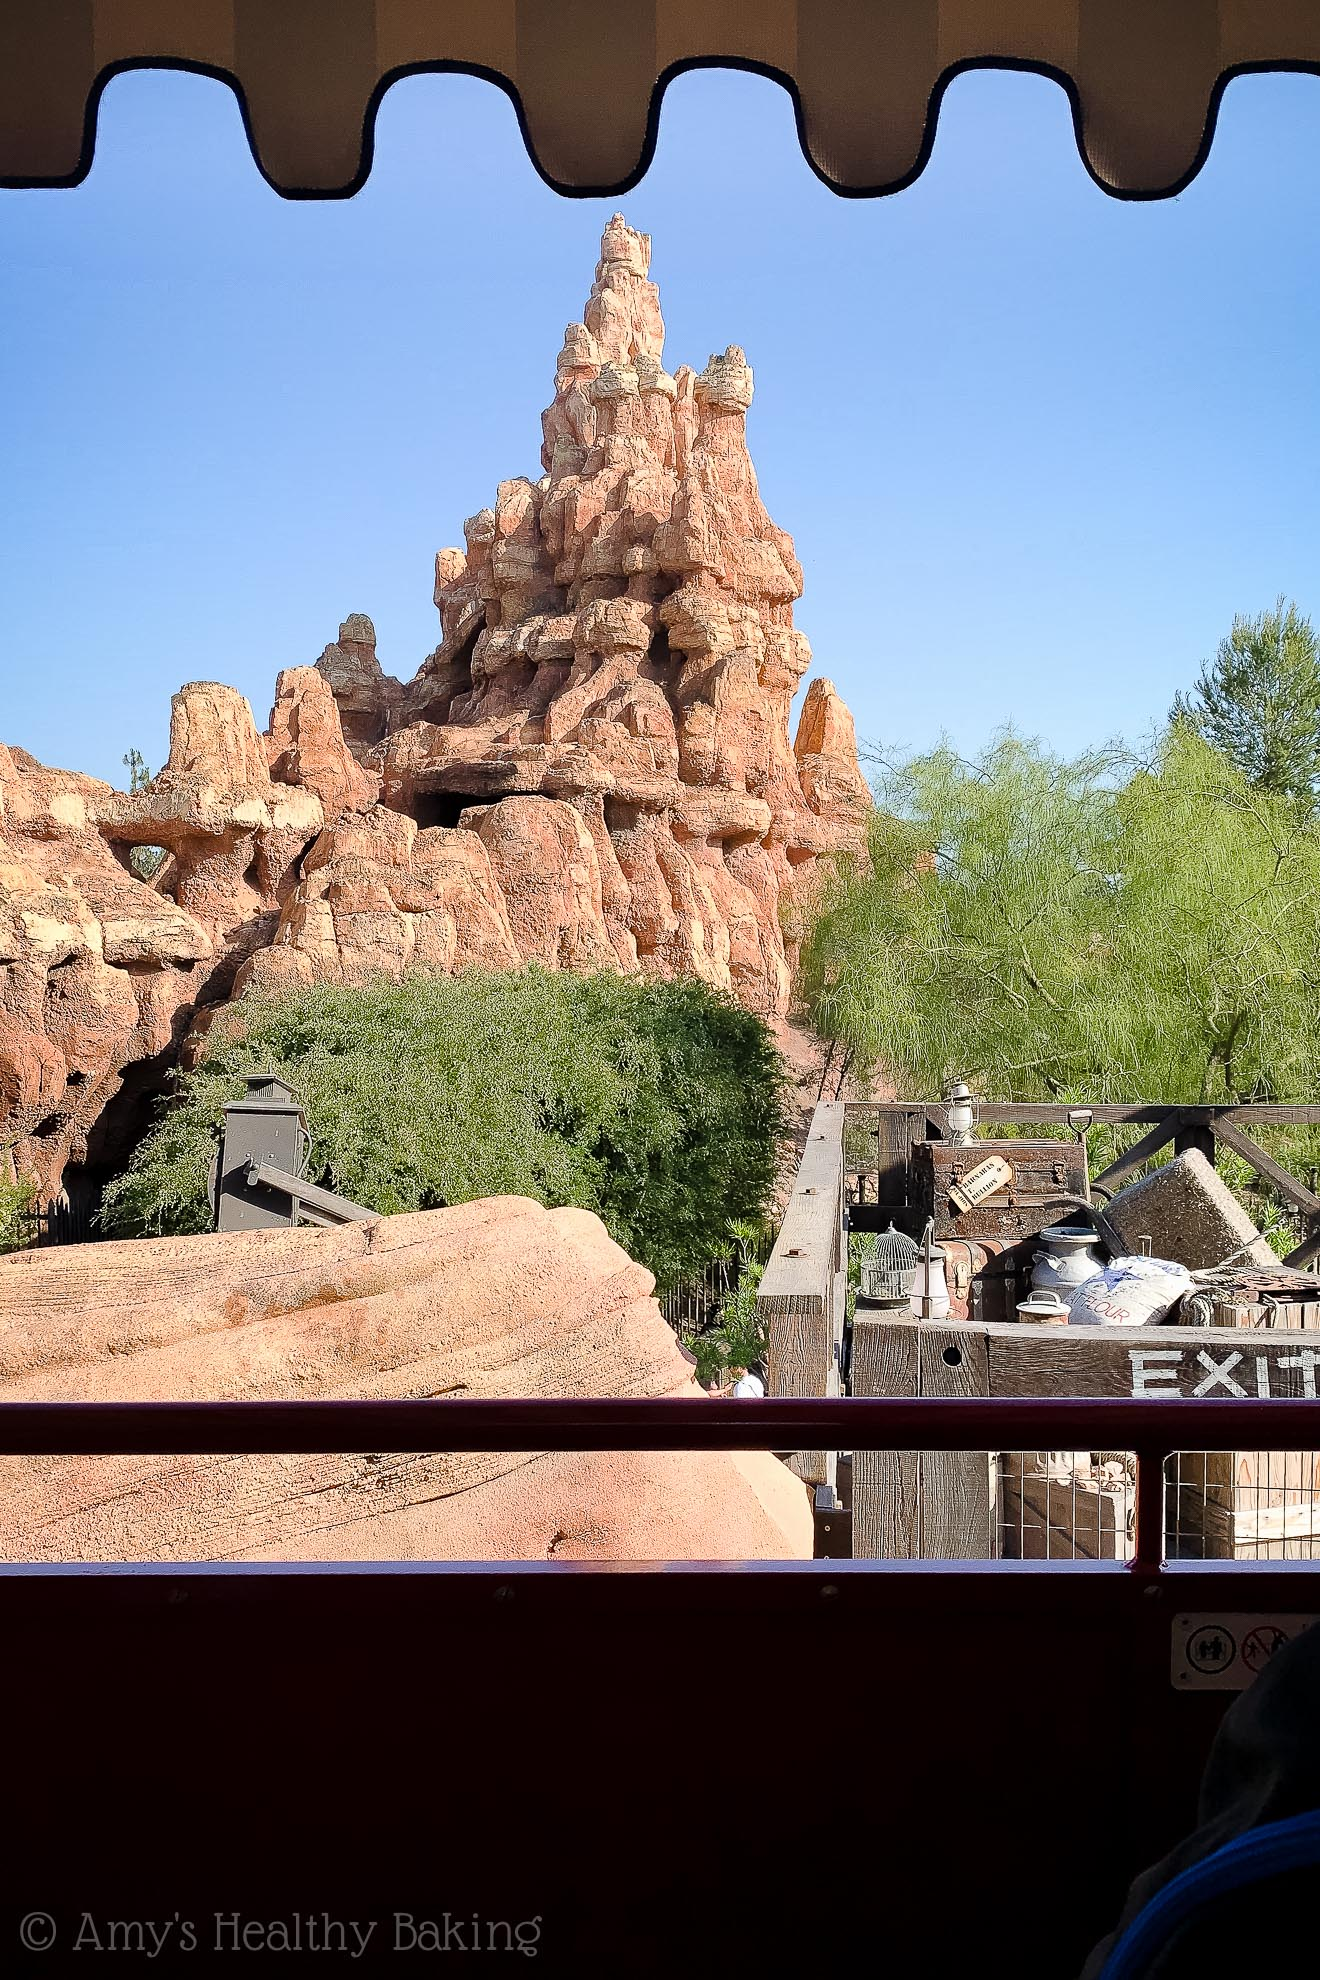 Thunder mountain from the Disneyland express train - Anaheim, California